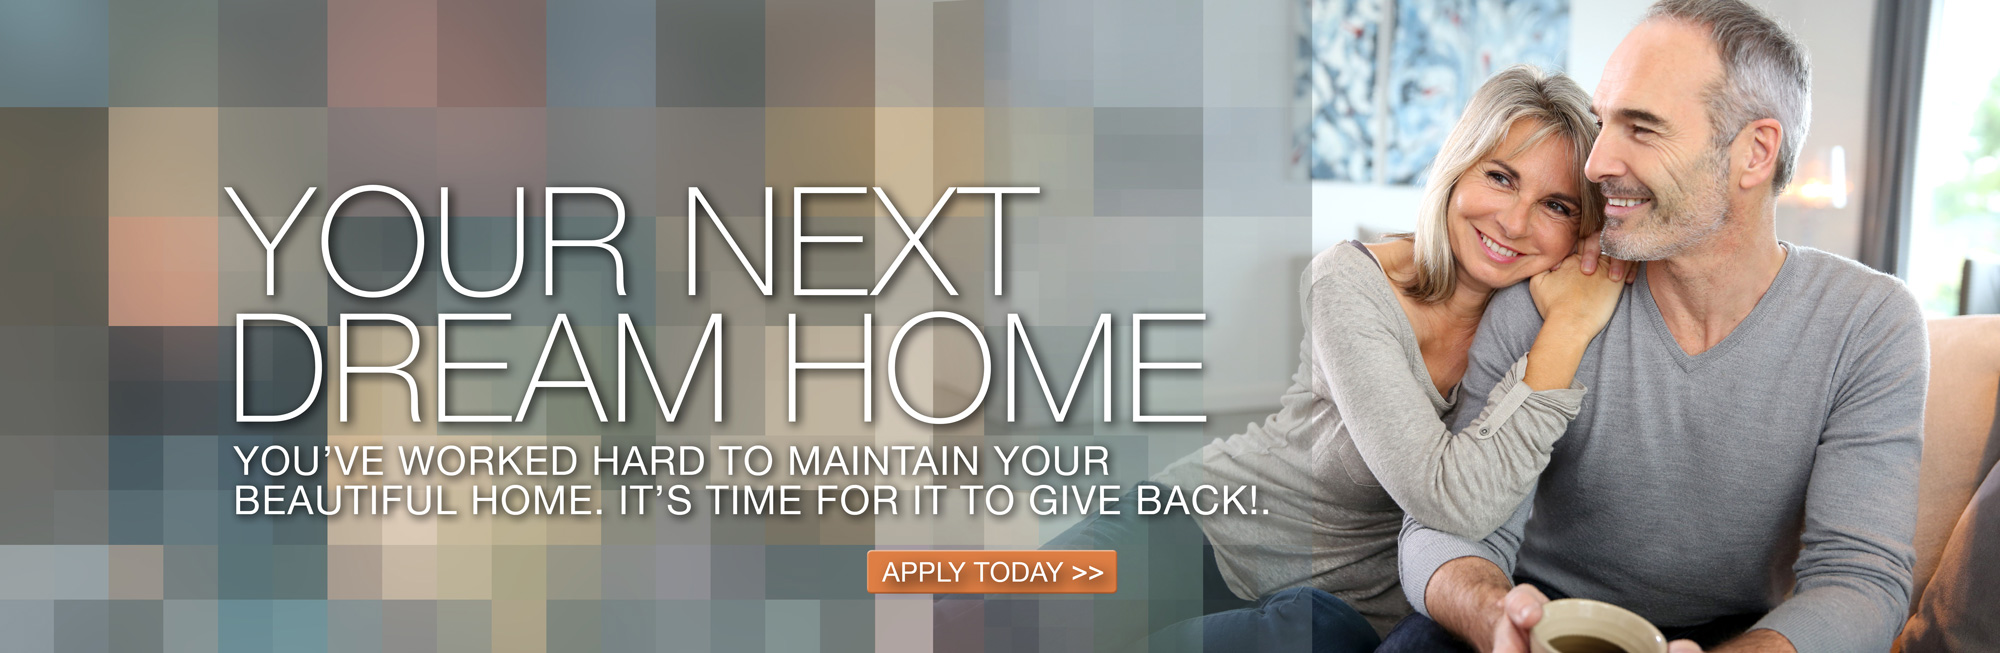 your next dream home, apply today